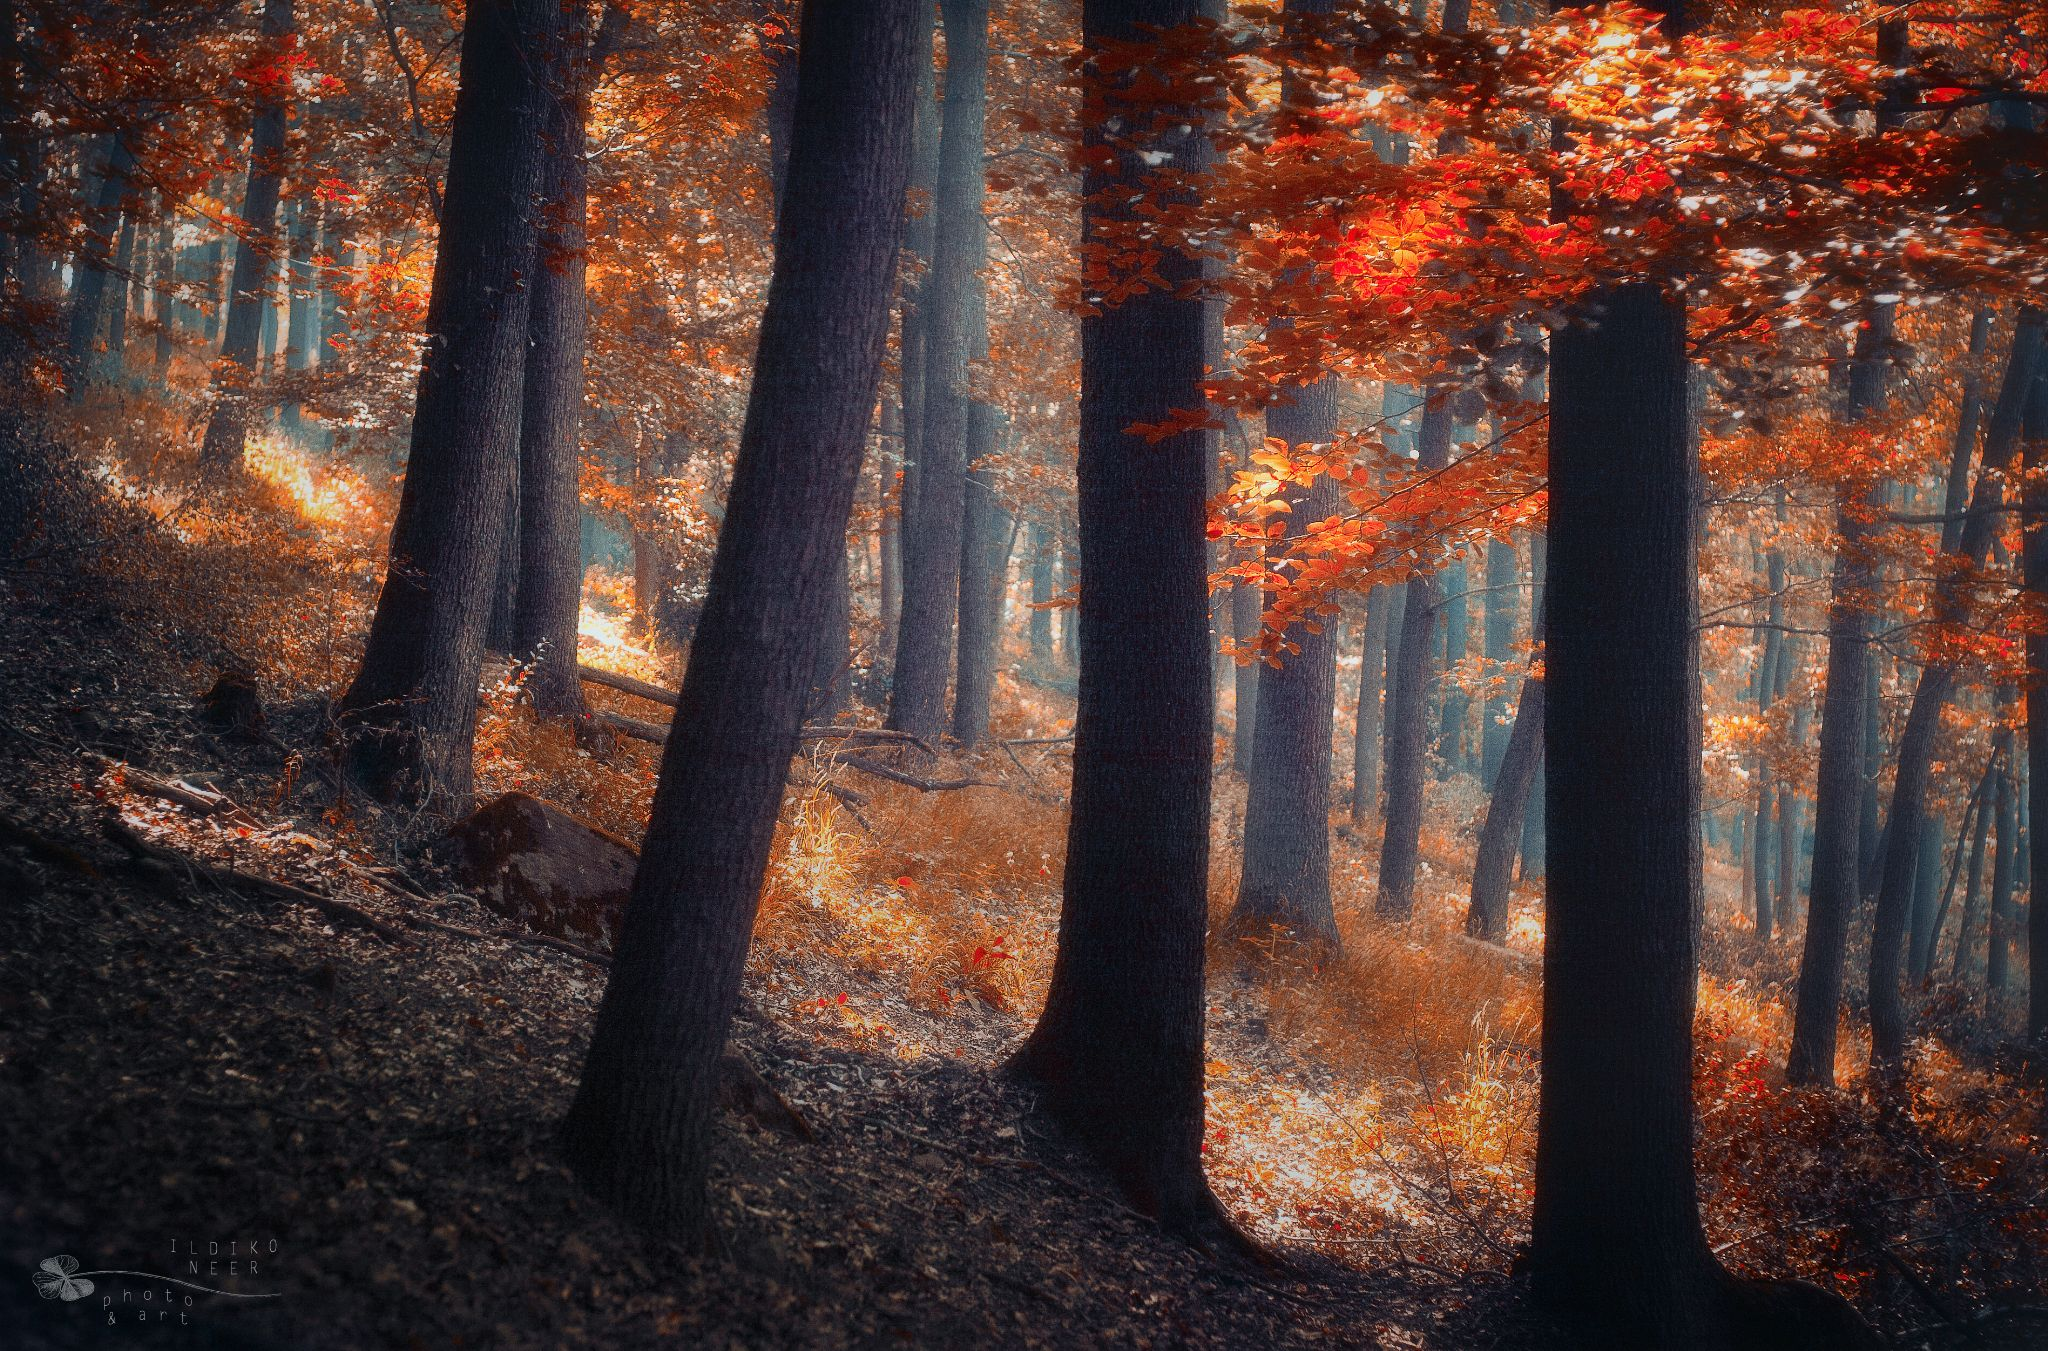 Mystic Forest by Ildiko Neer